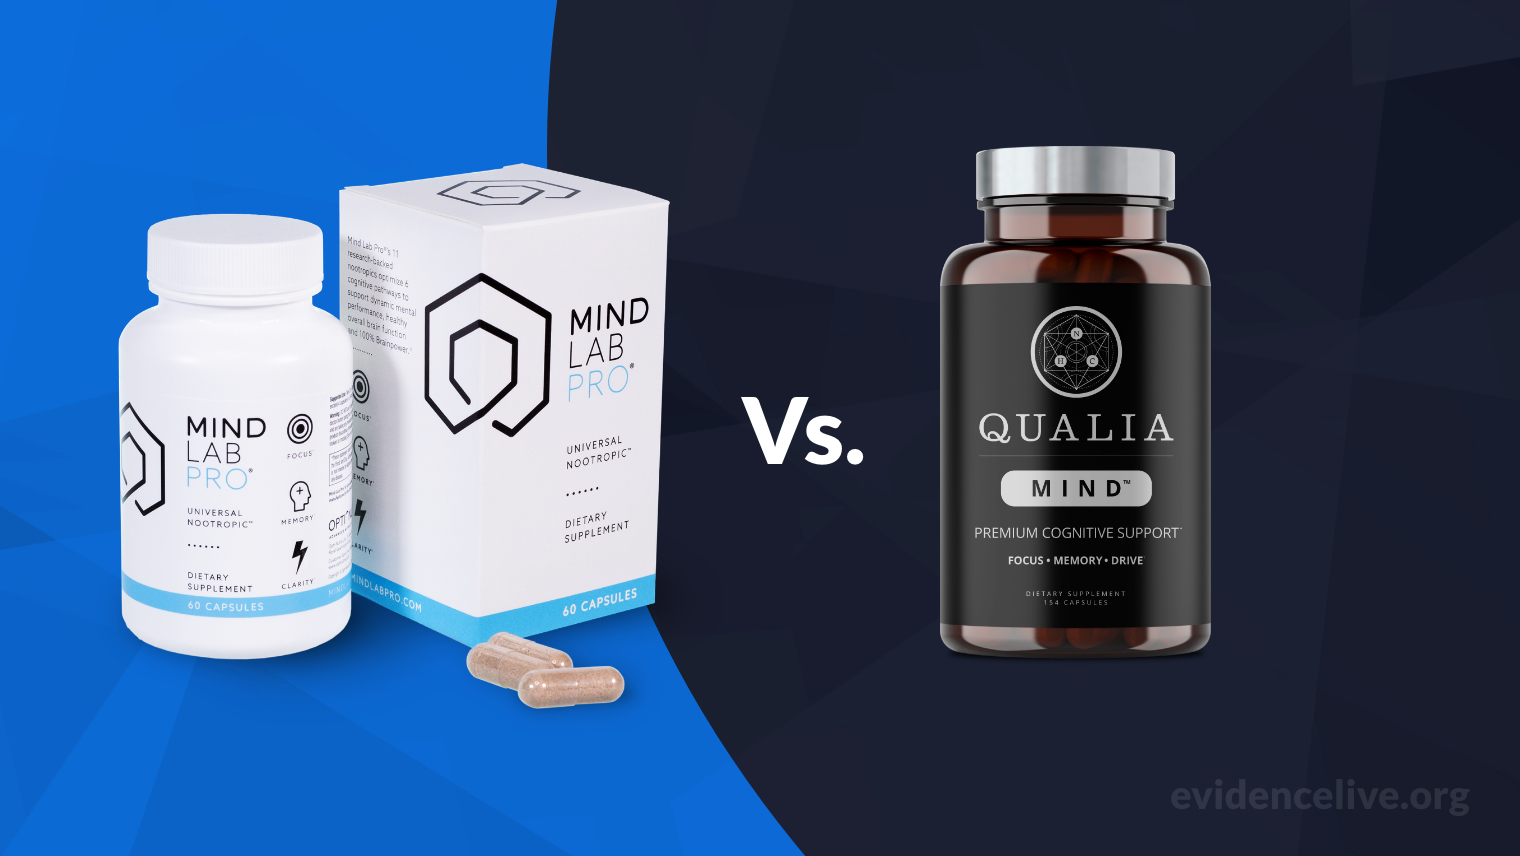 Mind Lab Pro vs. Qualia Mind: Which Nootropic Is Better?